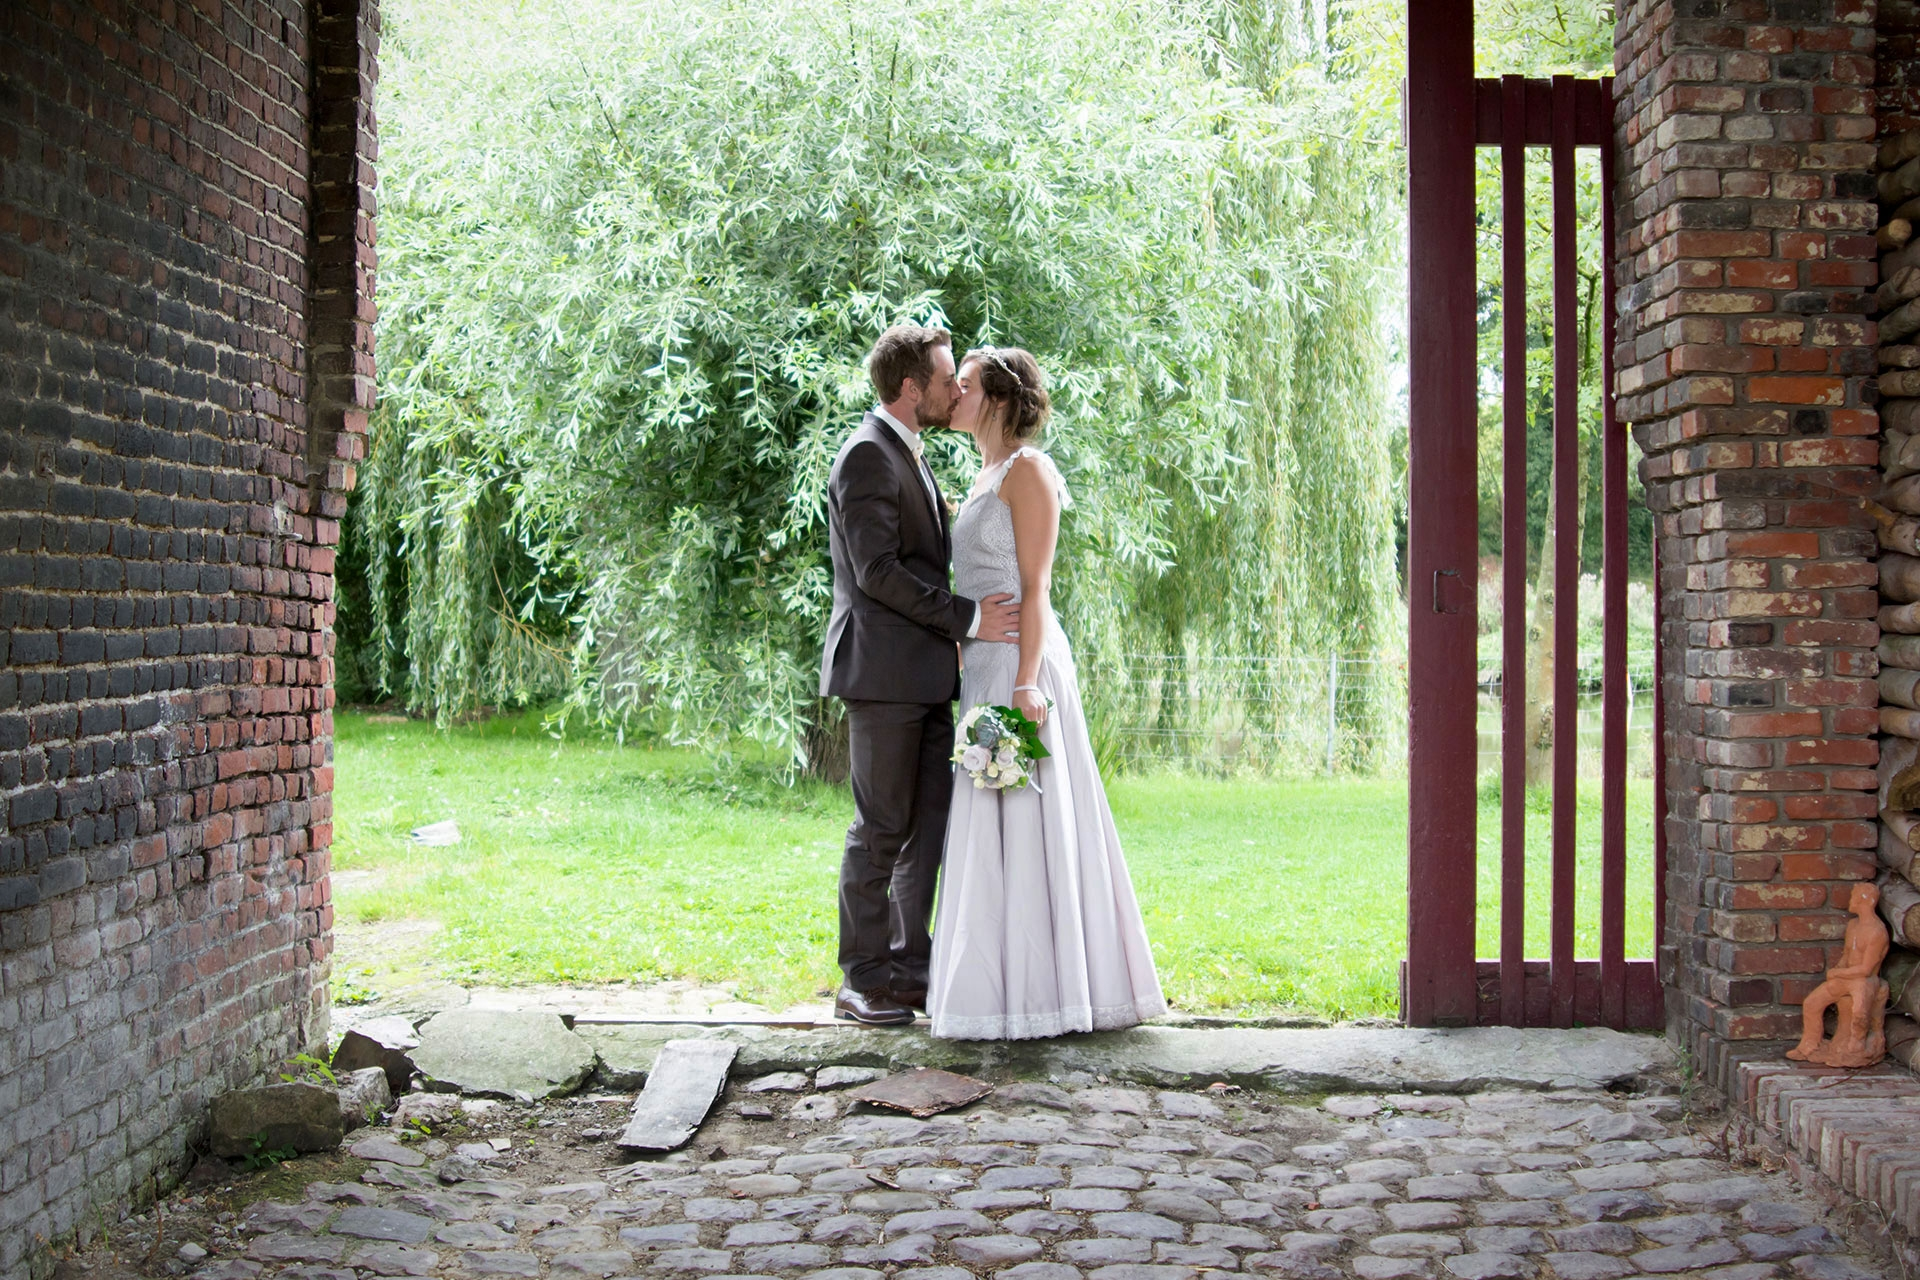 particuliers-mariages-oui-marymax-25